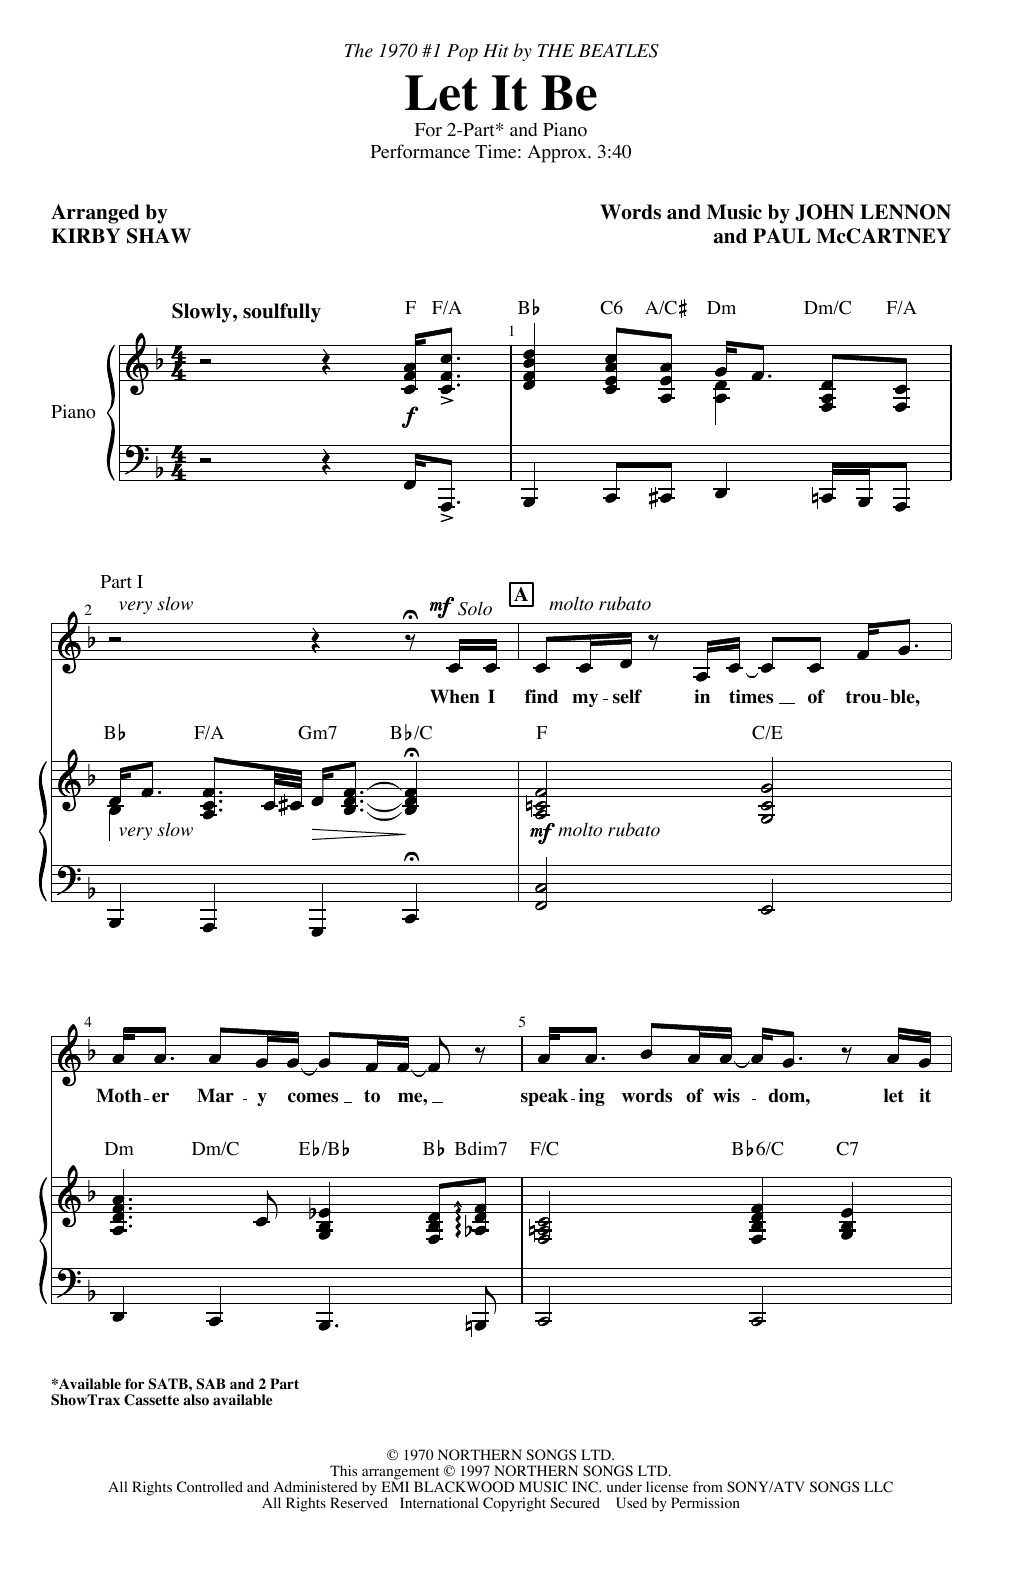 Let It Be (arr. Kirby Shaw) (2-Part Choir)